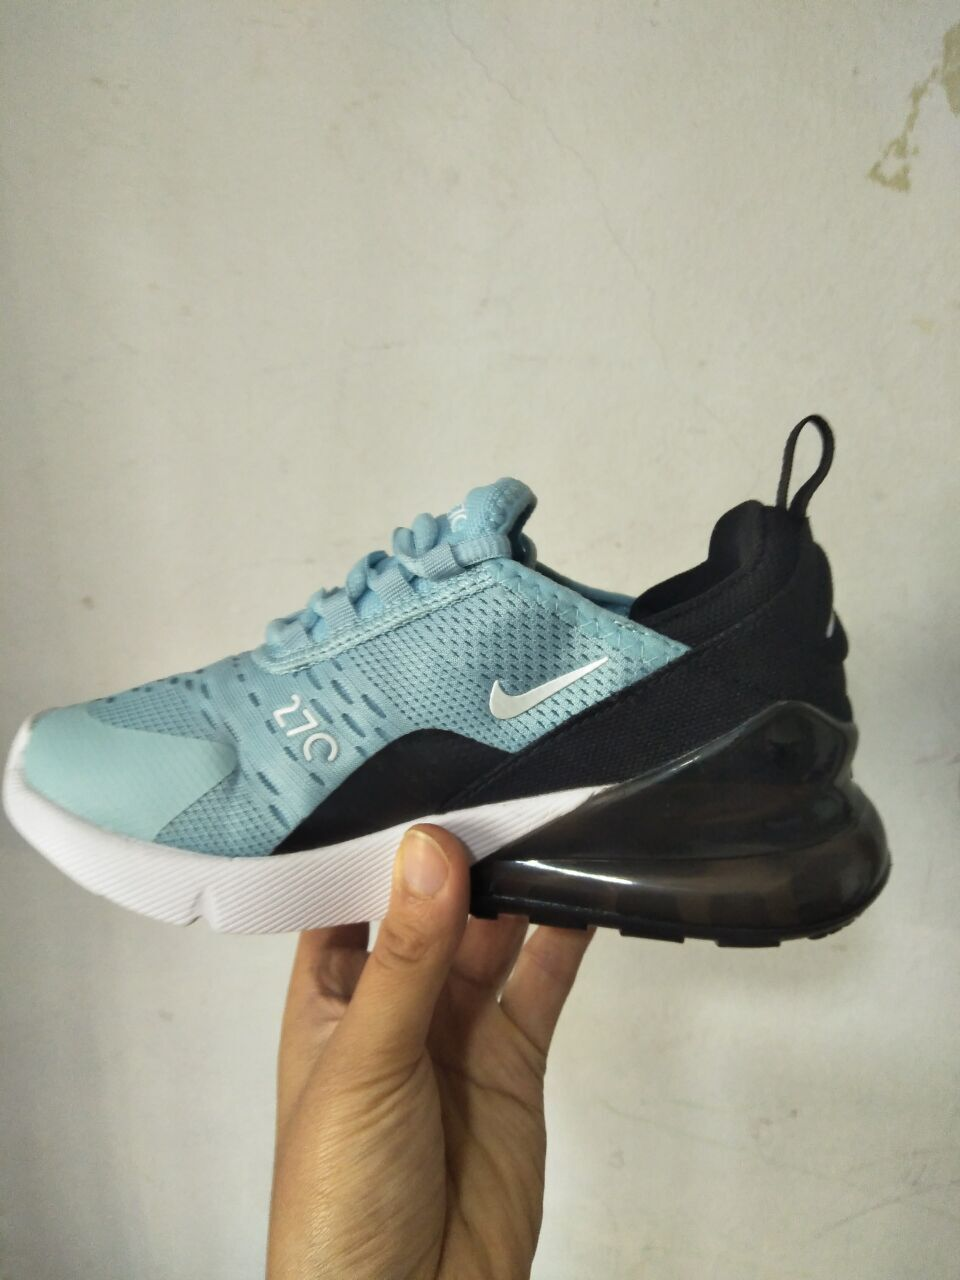 Kids Nike Air Max 270 Jade Blue Black Shoes